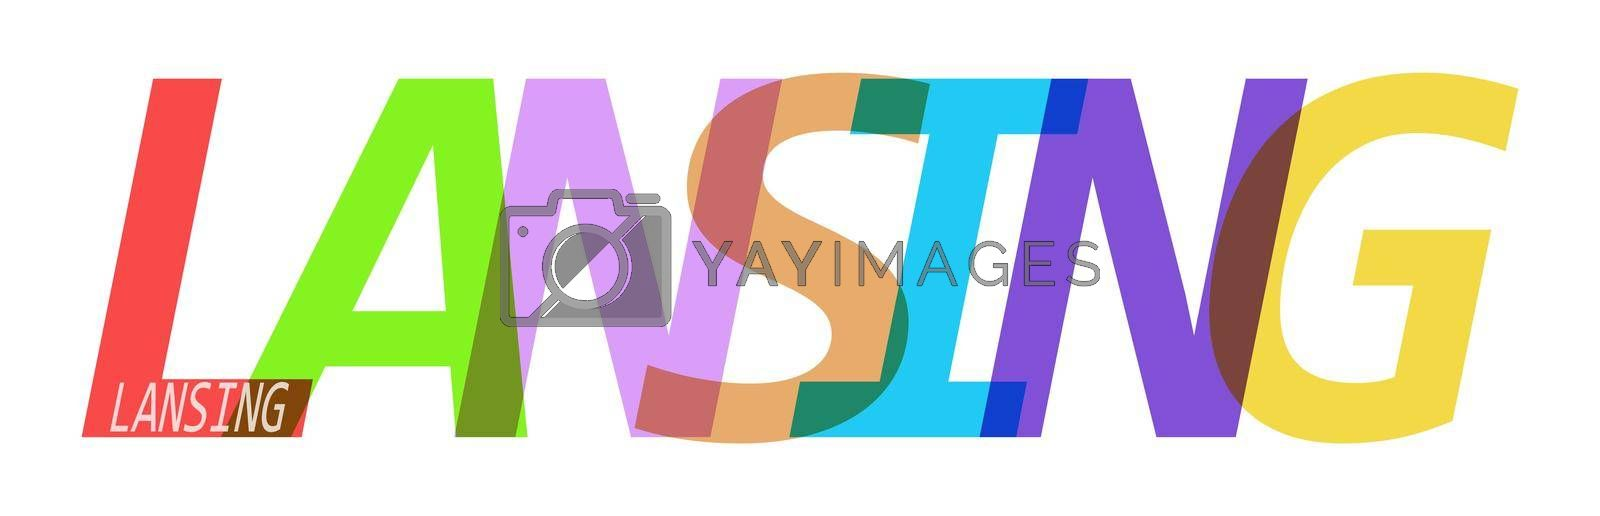 LANSING. The name of the city on a white background. Vector design template for poster, postcard, banner. Vector illustration.